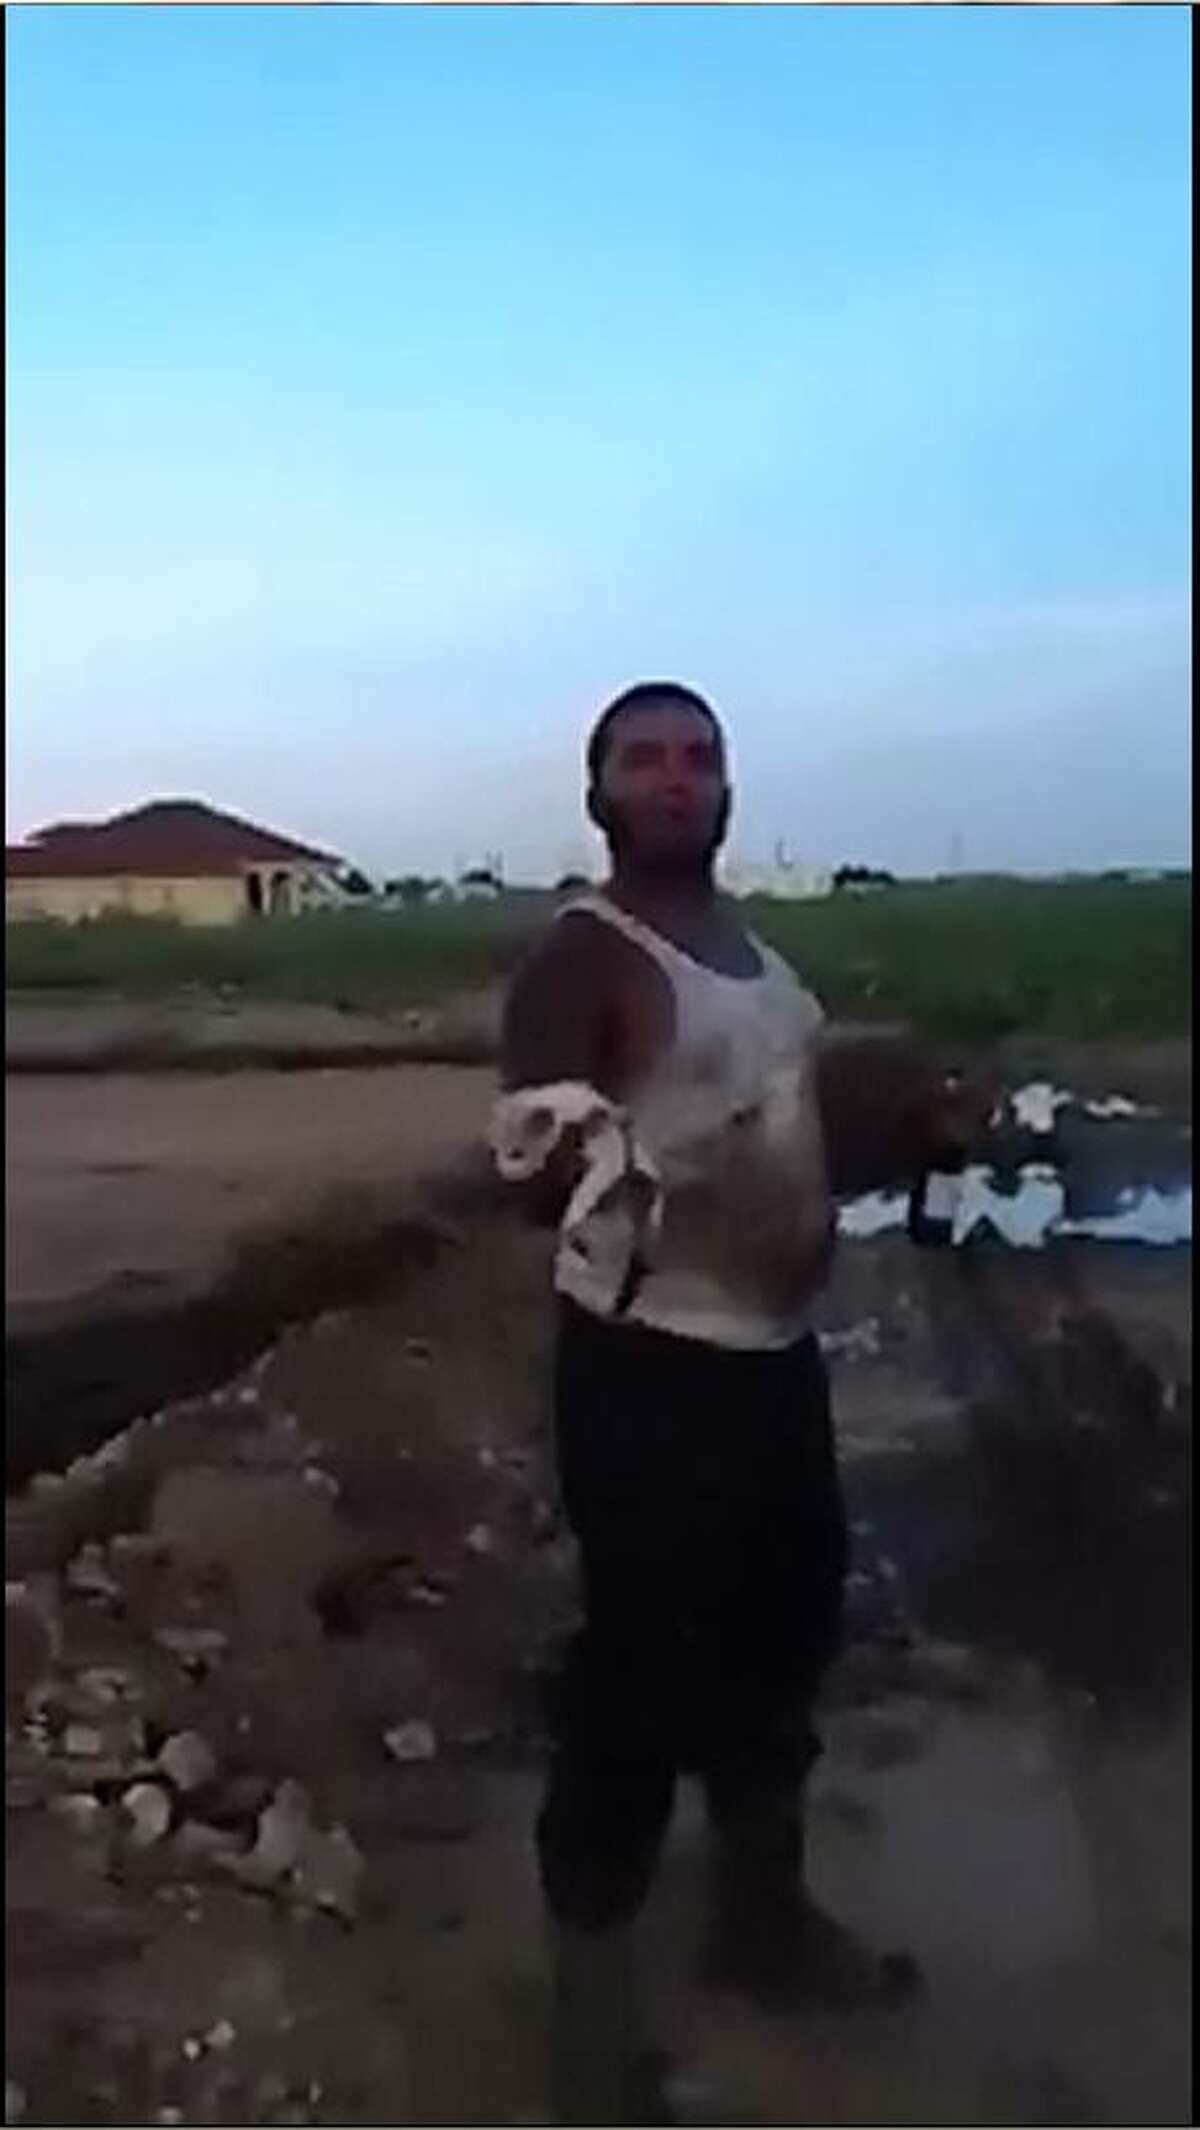 Screengrabs from a video posted online show an Odessa man flinging a small kitten across a field.